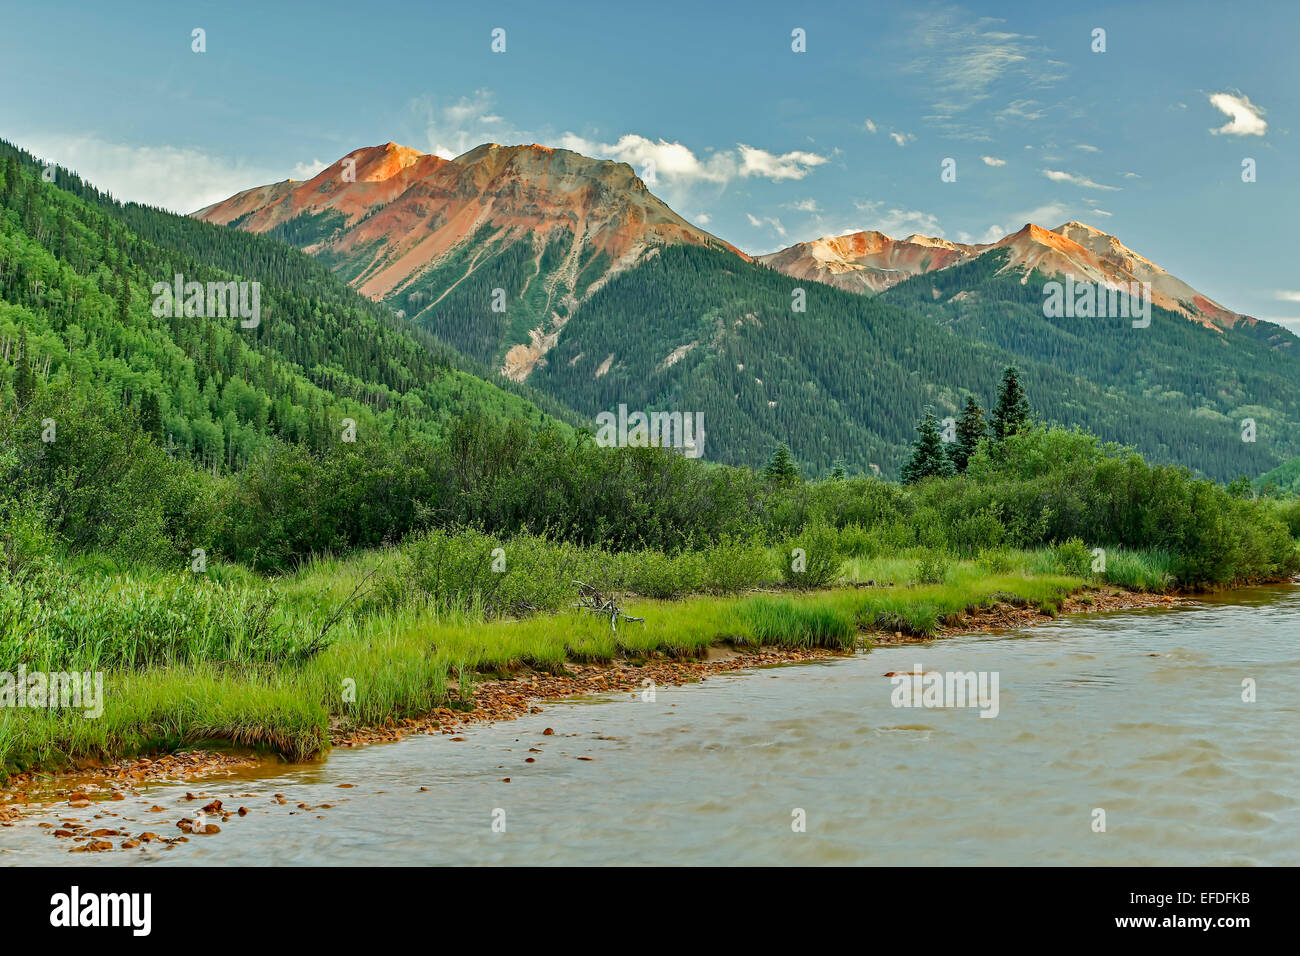 Red Mountains and Red Mountain Creek, near Ouray, Colorado USA - Stock Image